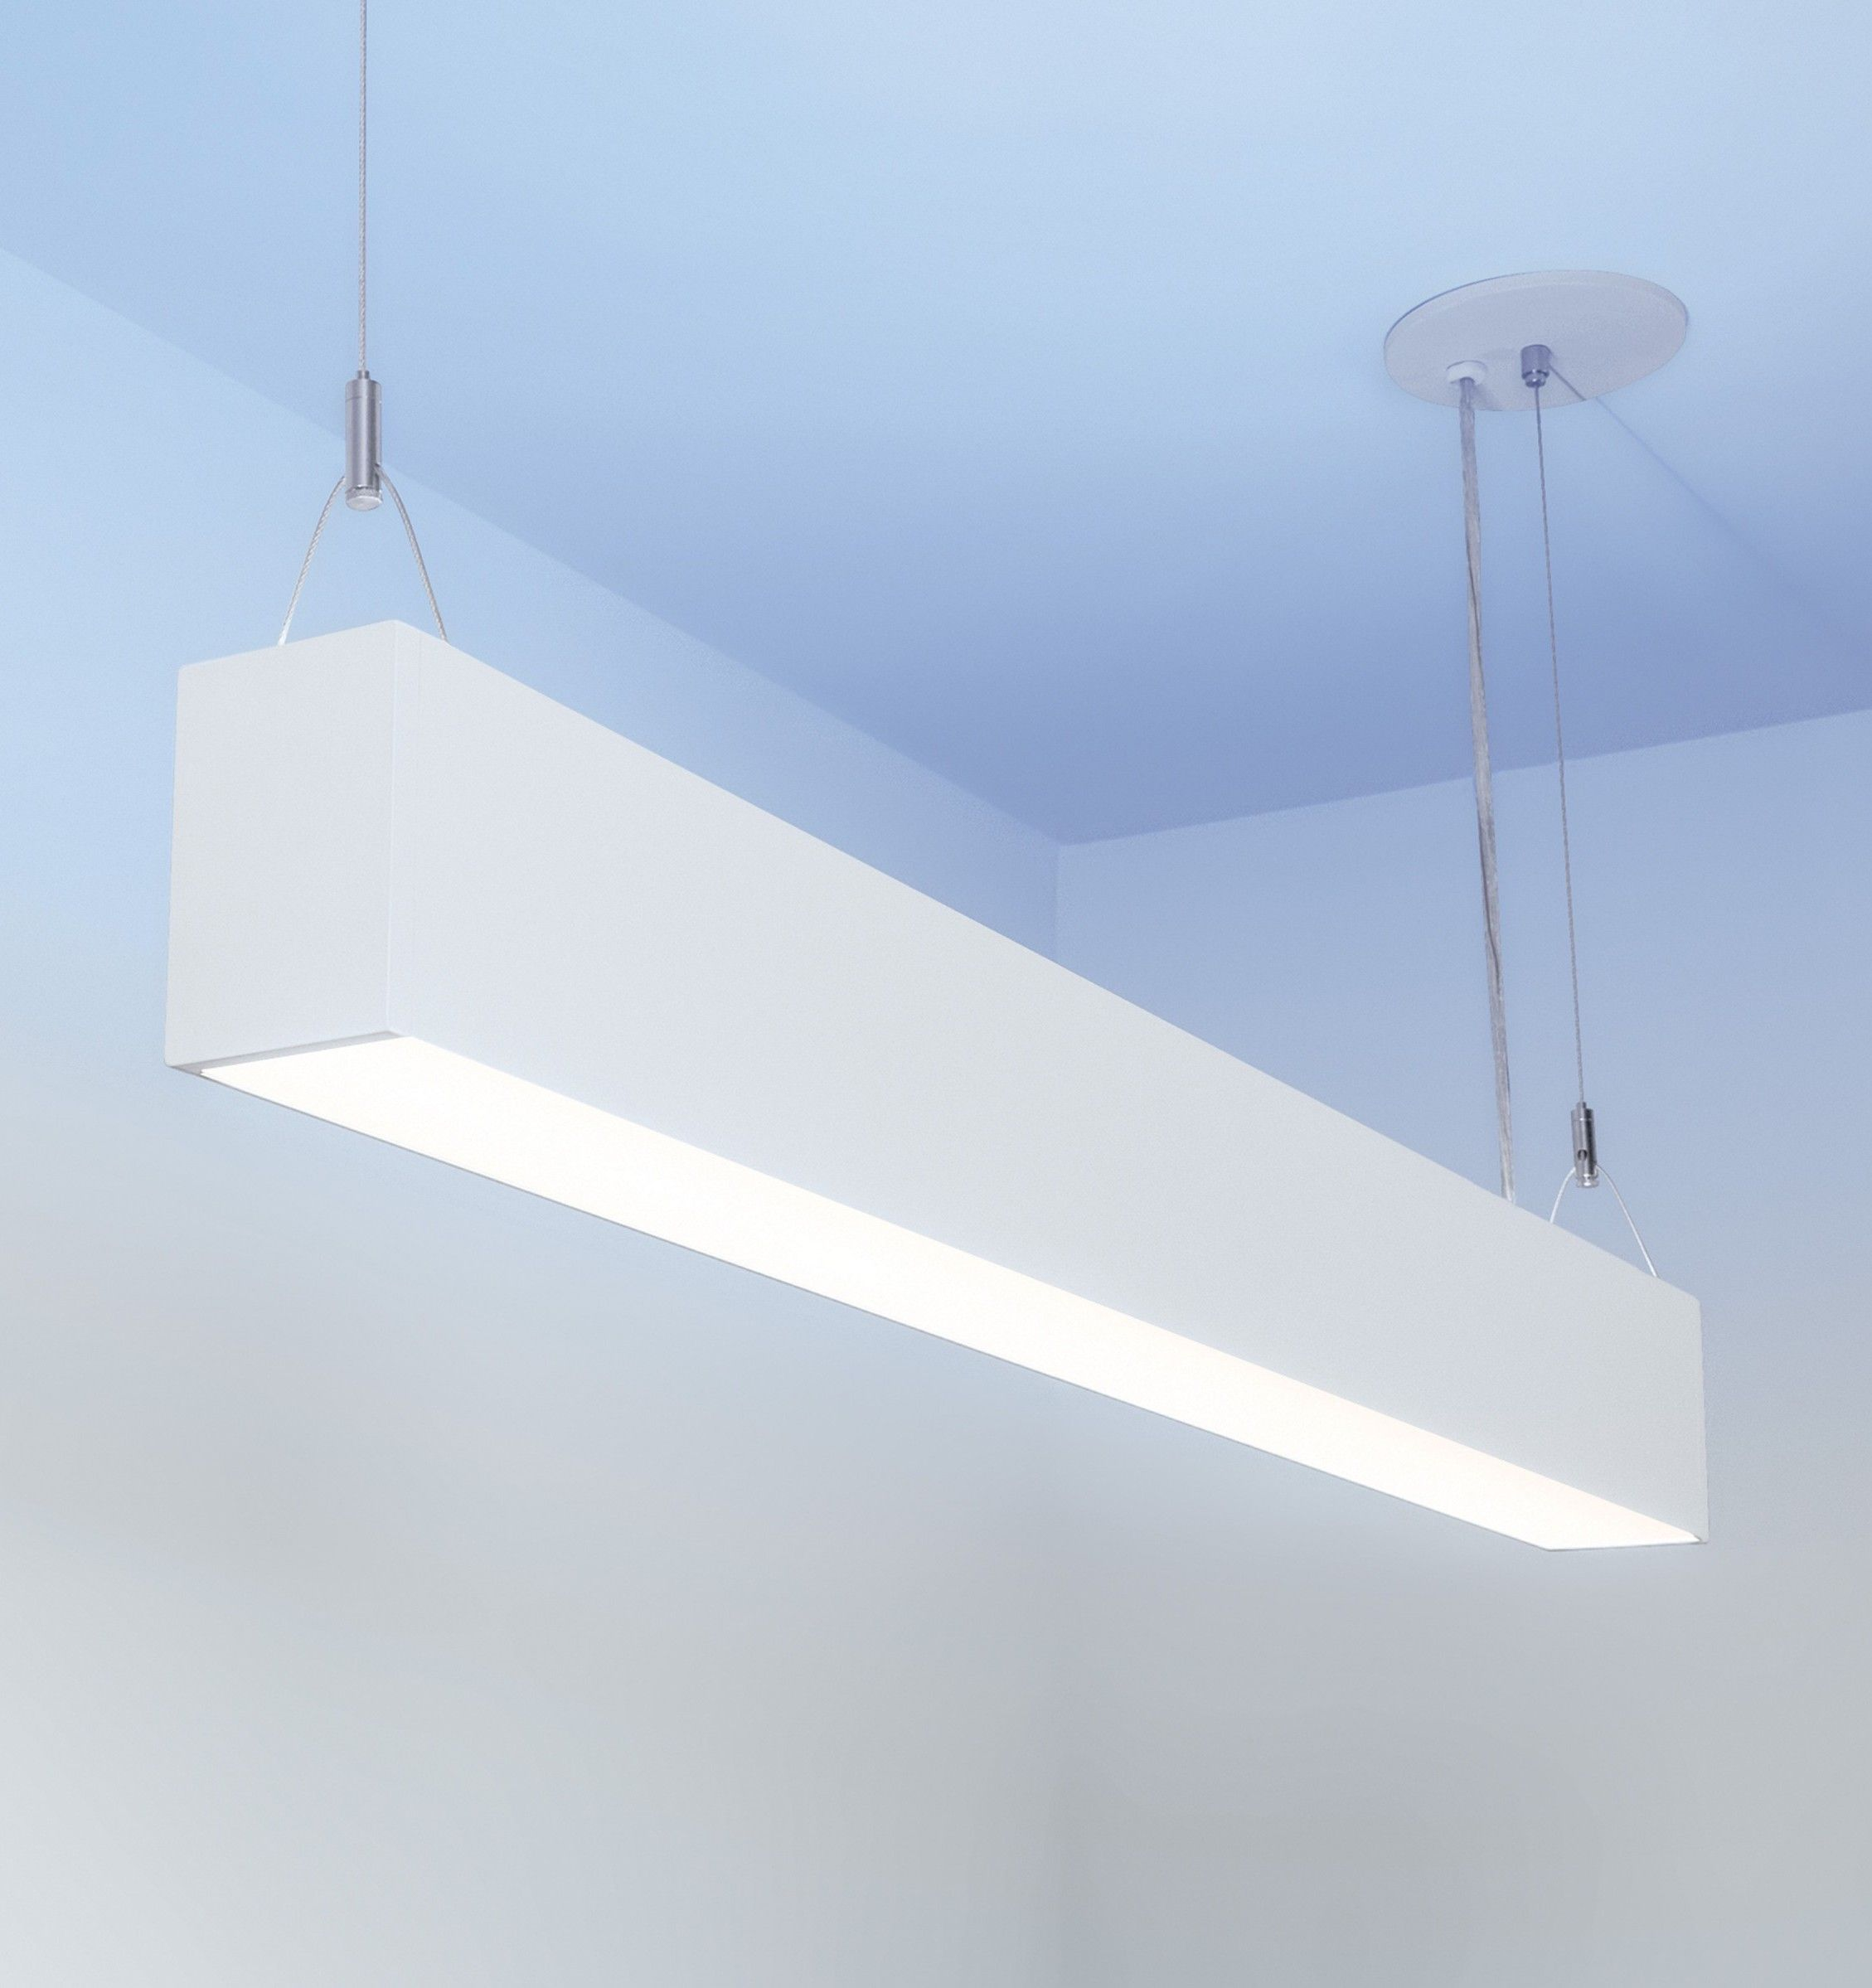 Lumenline Pendant Direct Indirect Part Of A Configurable System Of Linear Le Suspended Lighting Fixtures Modern Track Lighting Kitchen Flexible Track Lighting